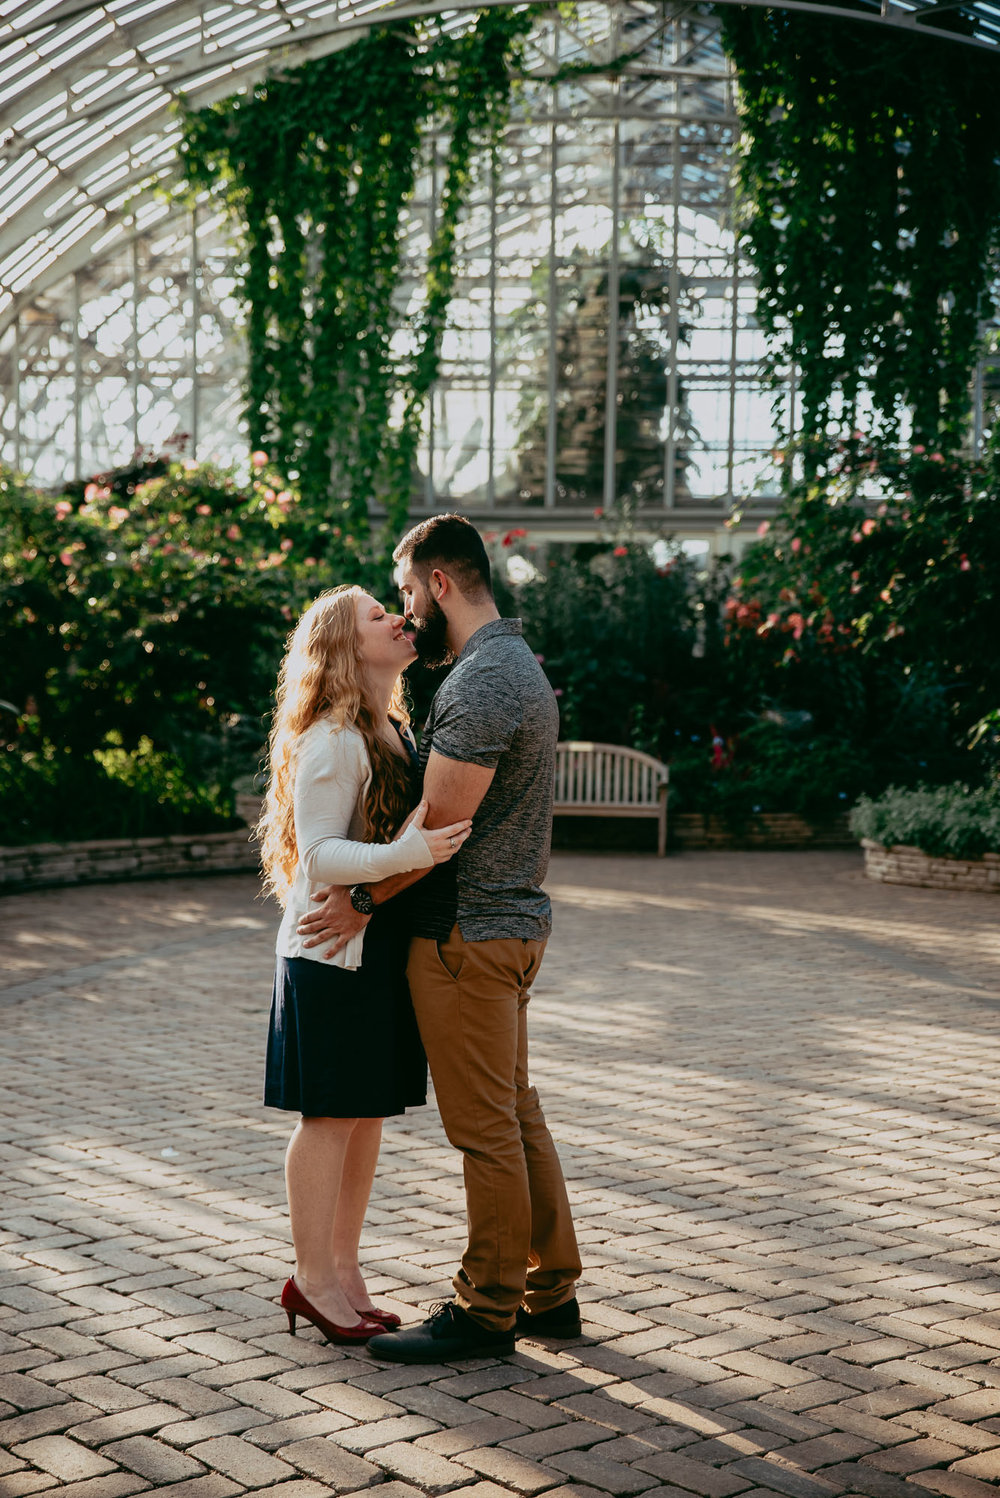 garfield-conservatory-engagement-photos-chicago-il-photographers-21.jpg